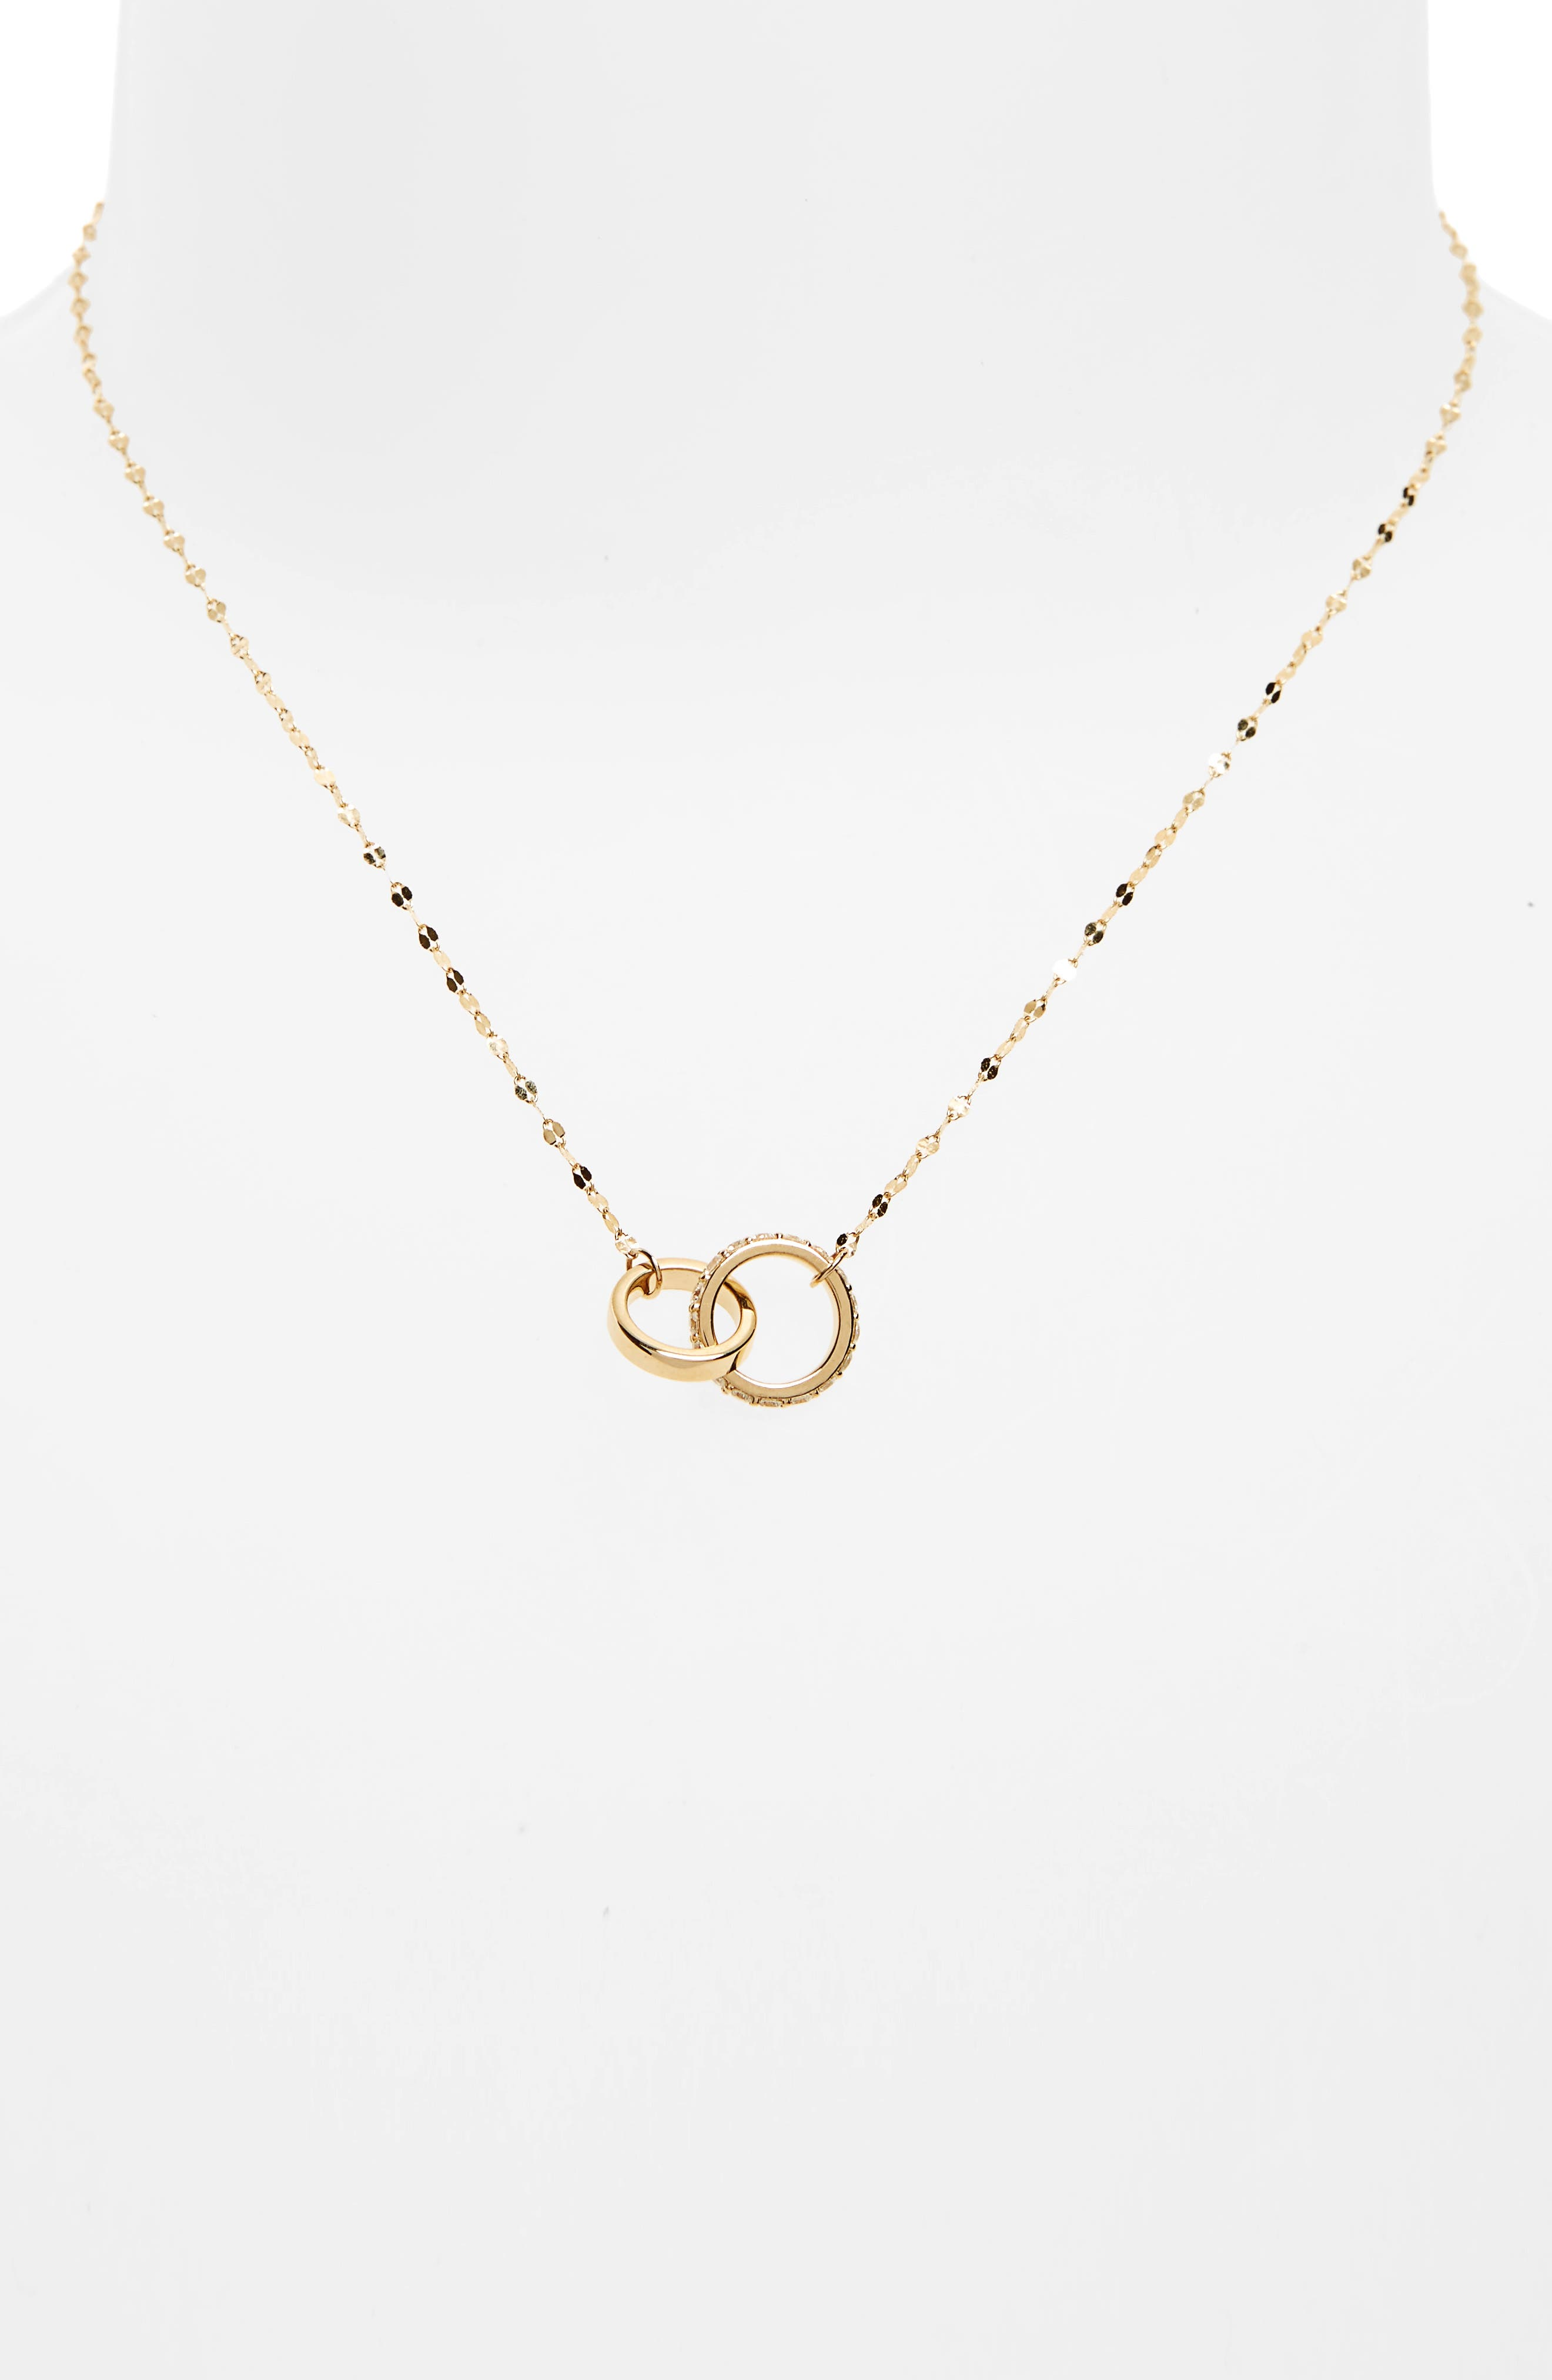 Flawless Diamond Link Pendant Necklace,                             Alternate thumbnail 2, color,                             Yellow Gold